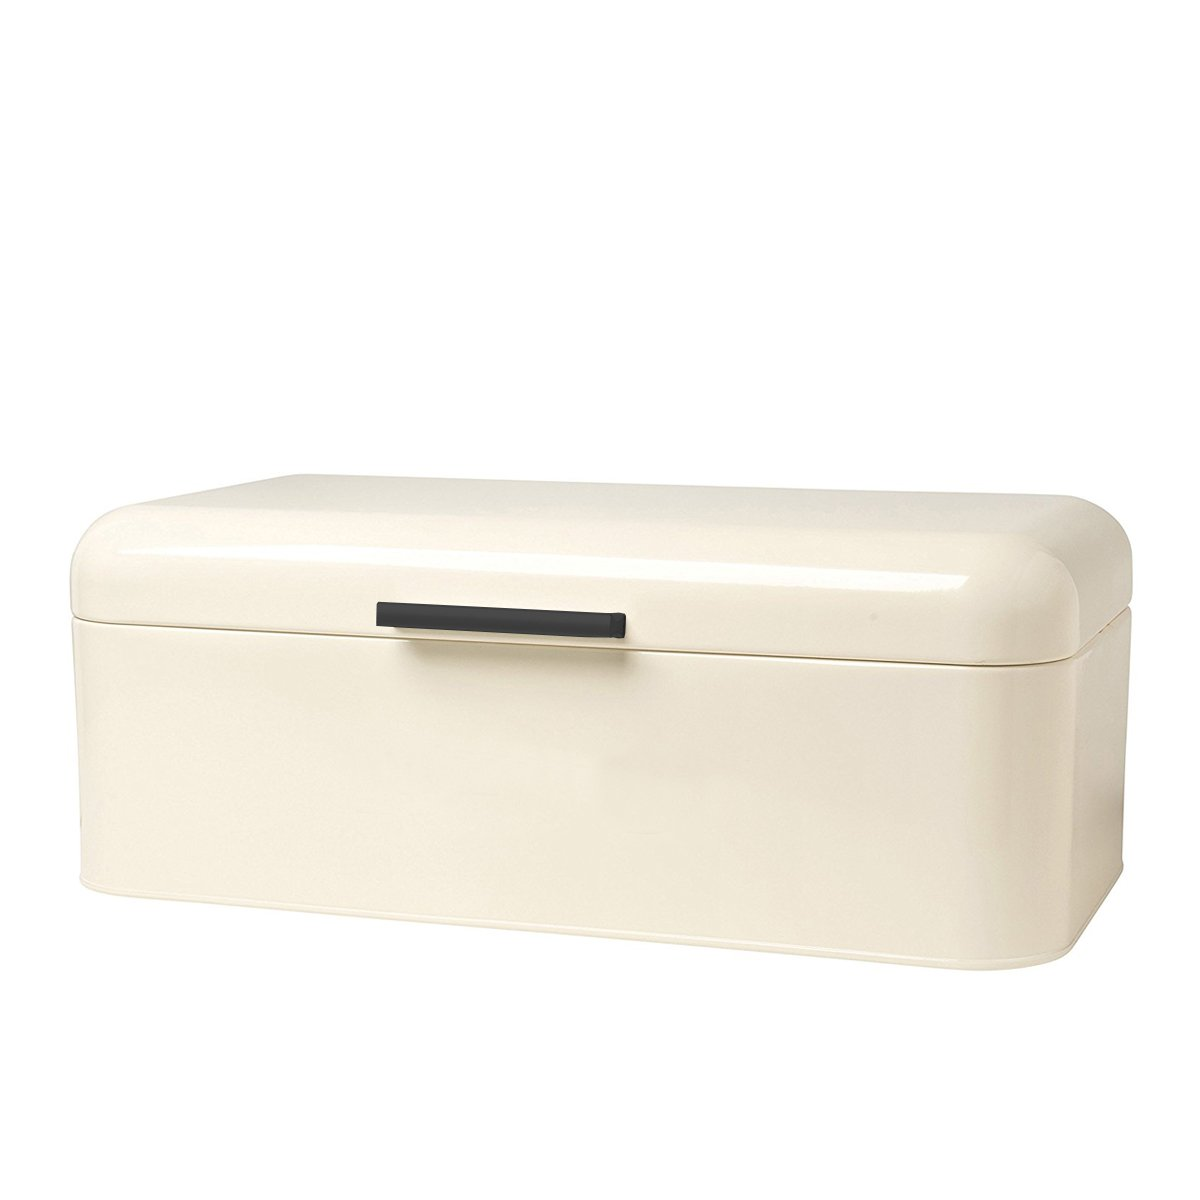 Homelet Bread Box - Vintage Retro Stainless Steel Powder Coated Bread Bin Storage with Lid for Kitchen, Cream by Homelet